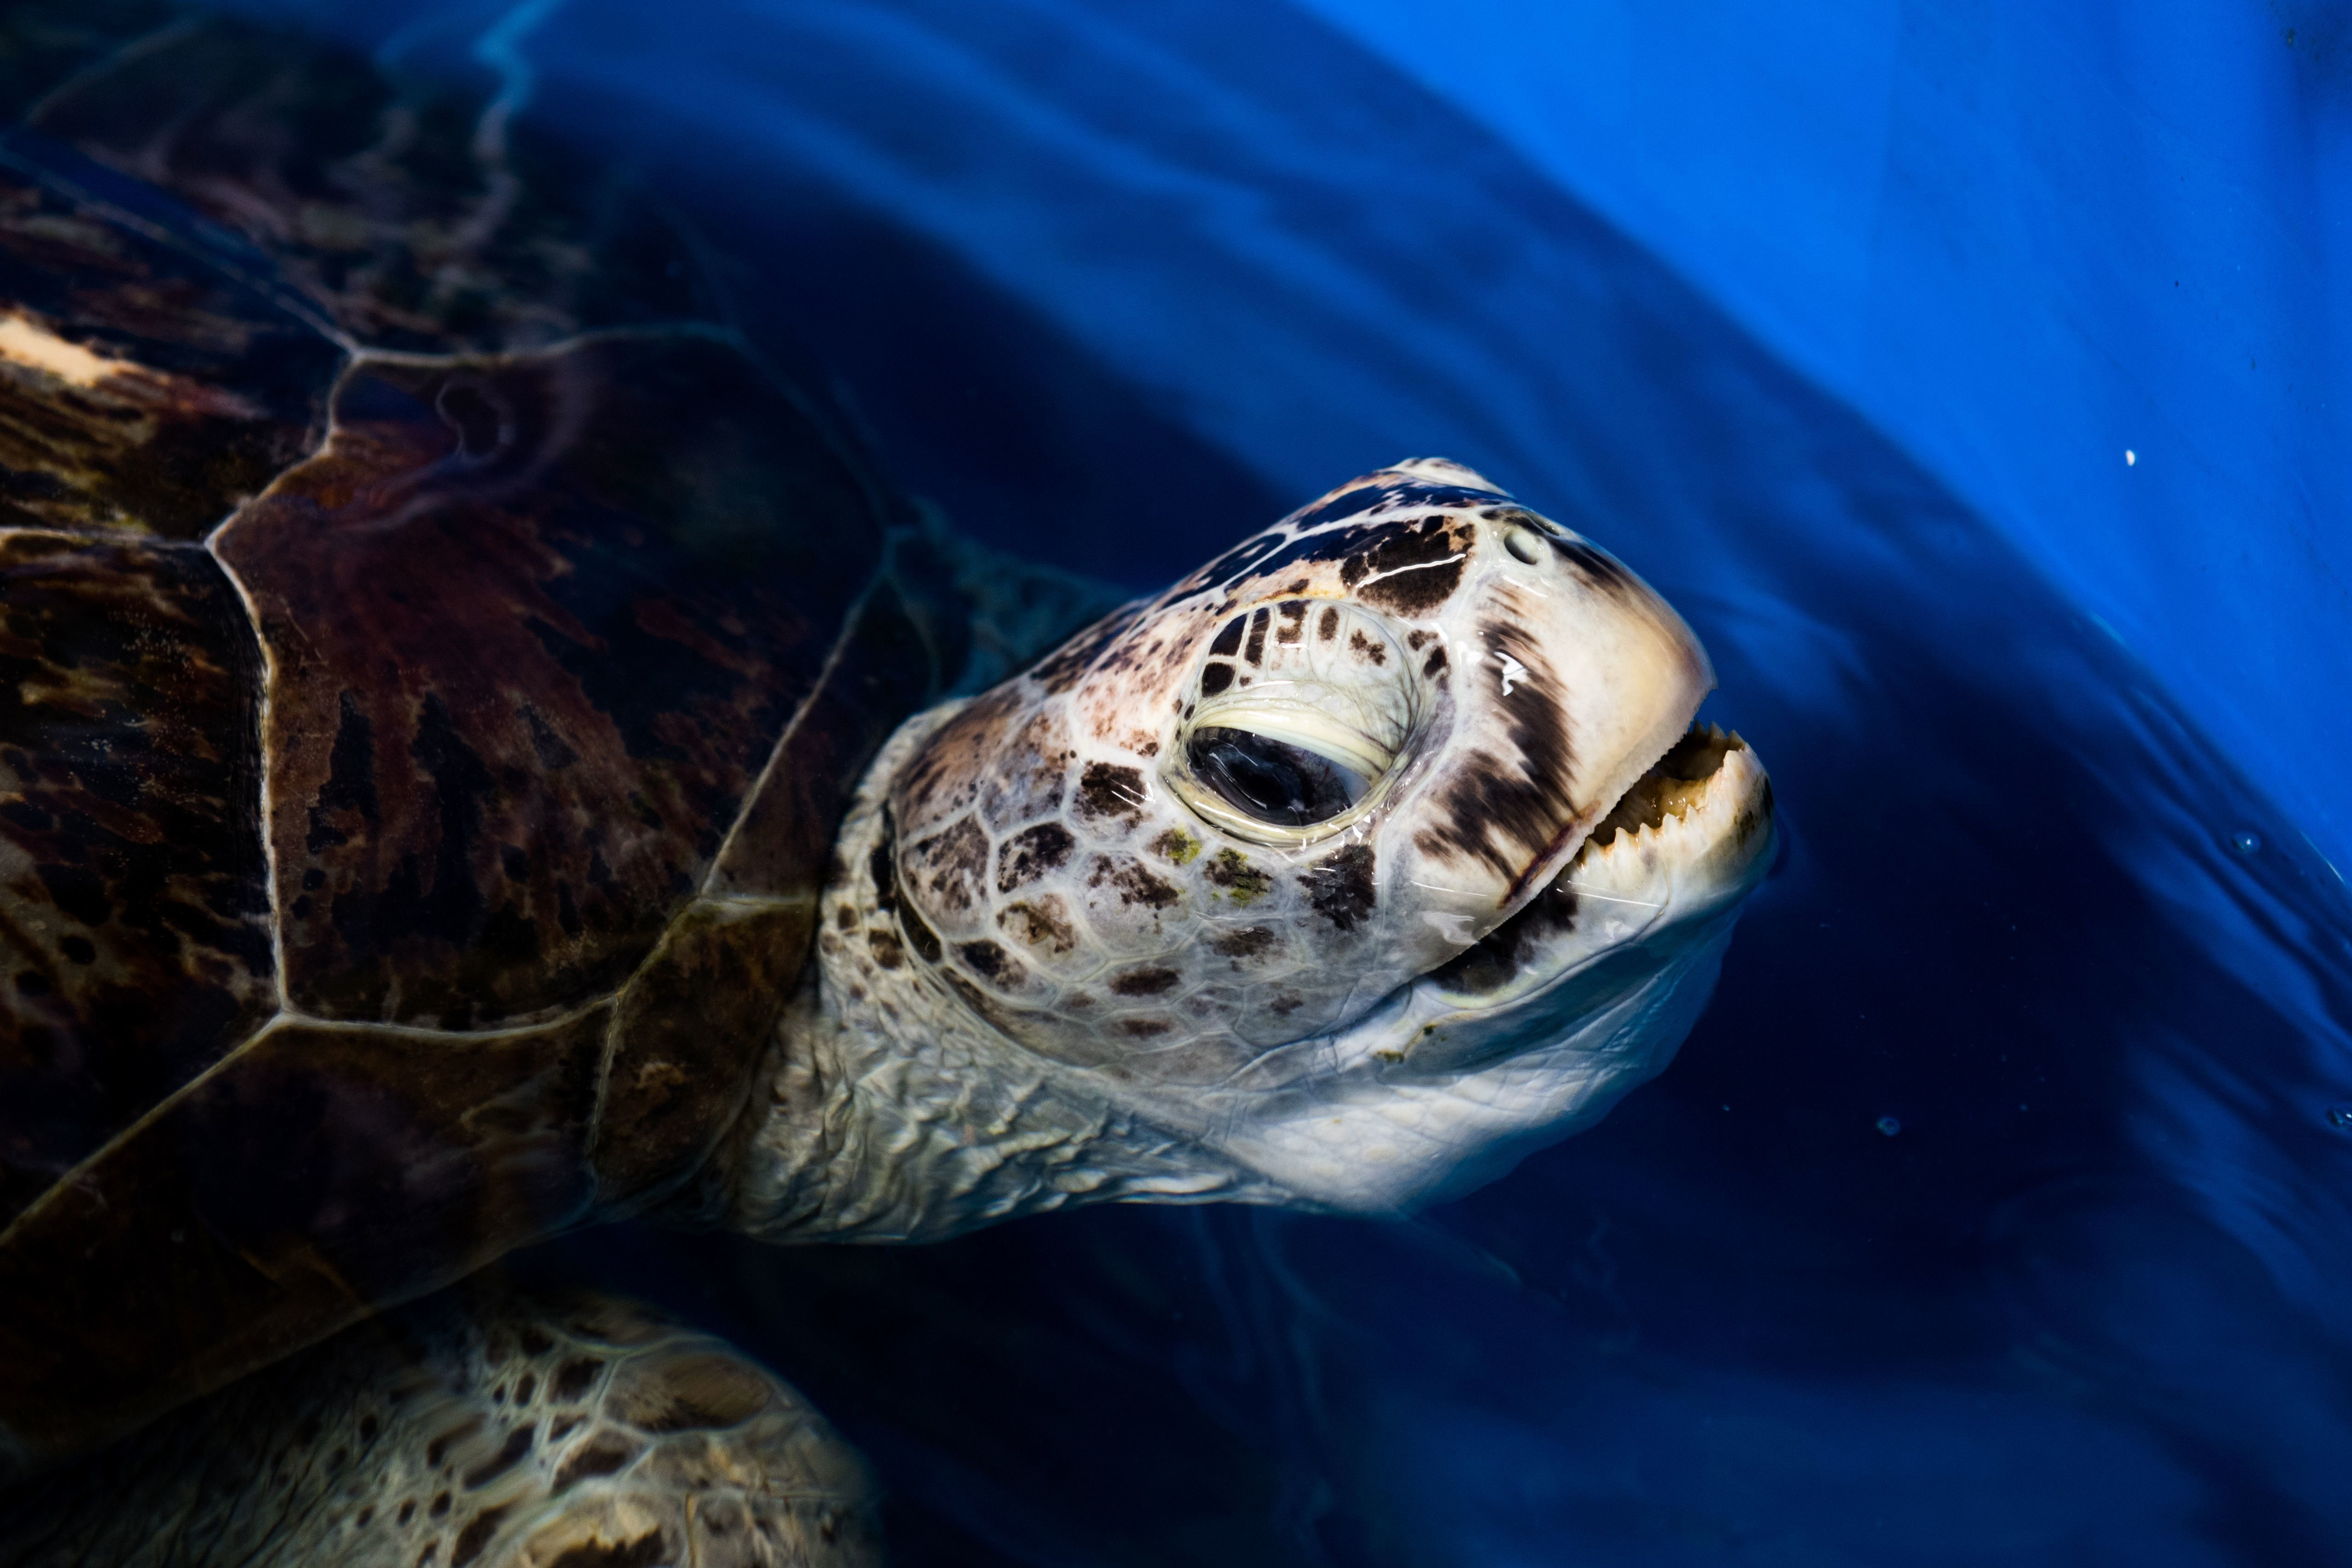 The sea turtle underwent a four-hour operation to remove the coins from her stomach after they had been tossed into her pool